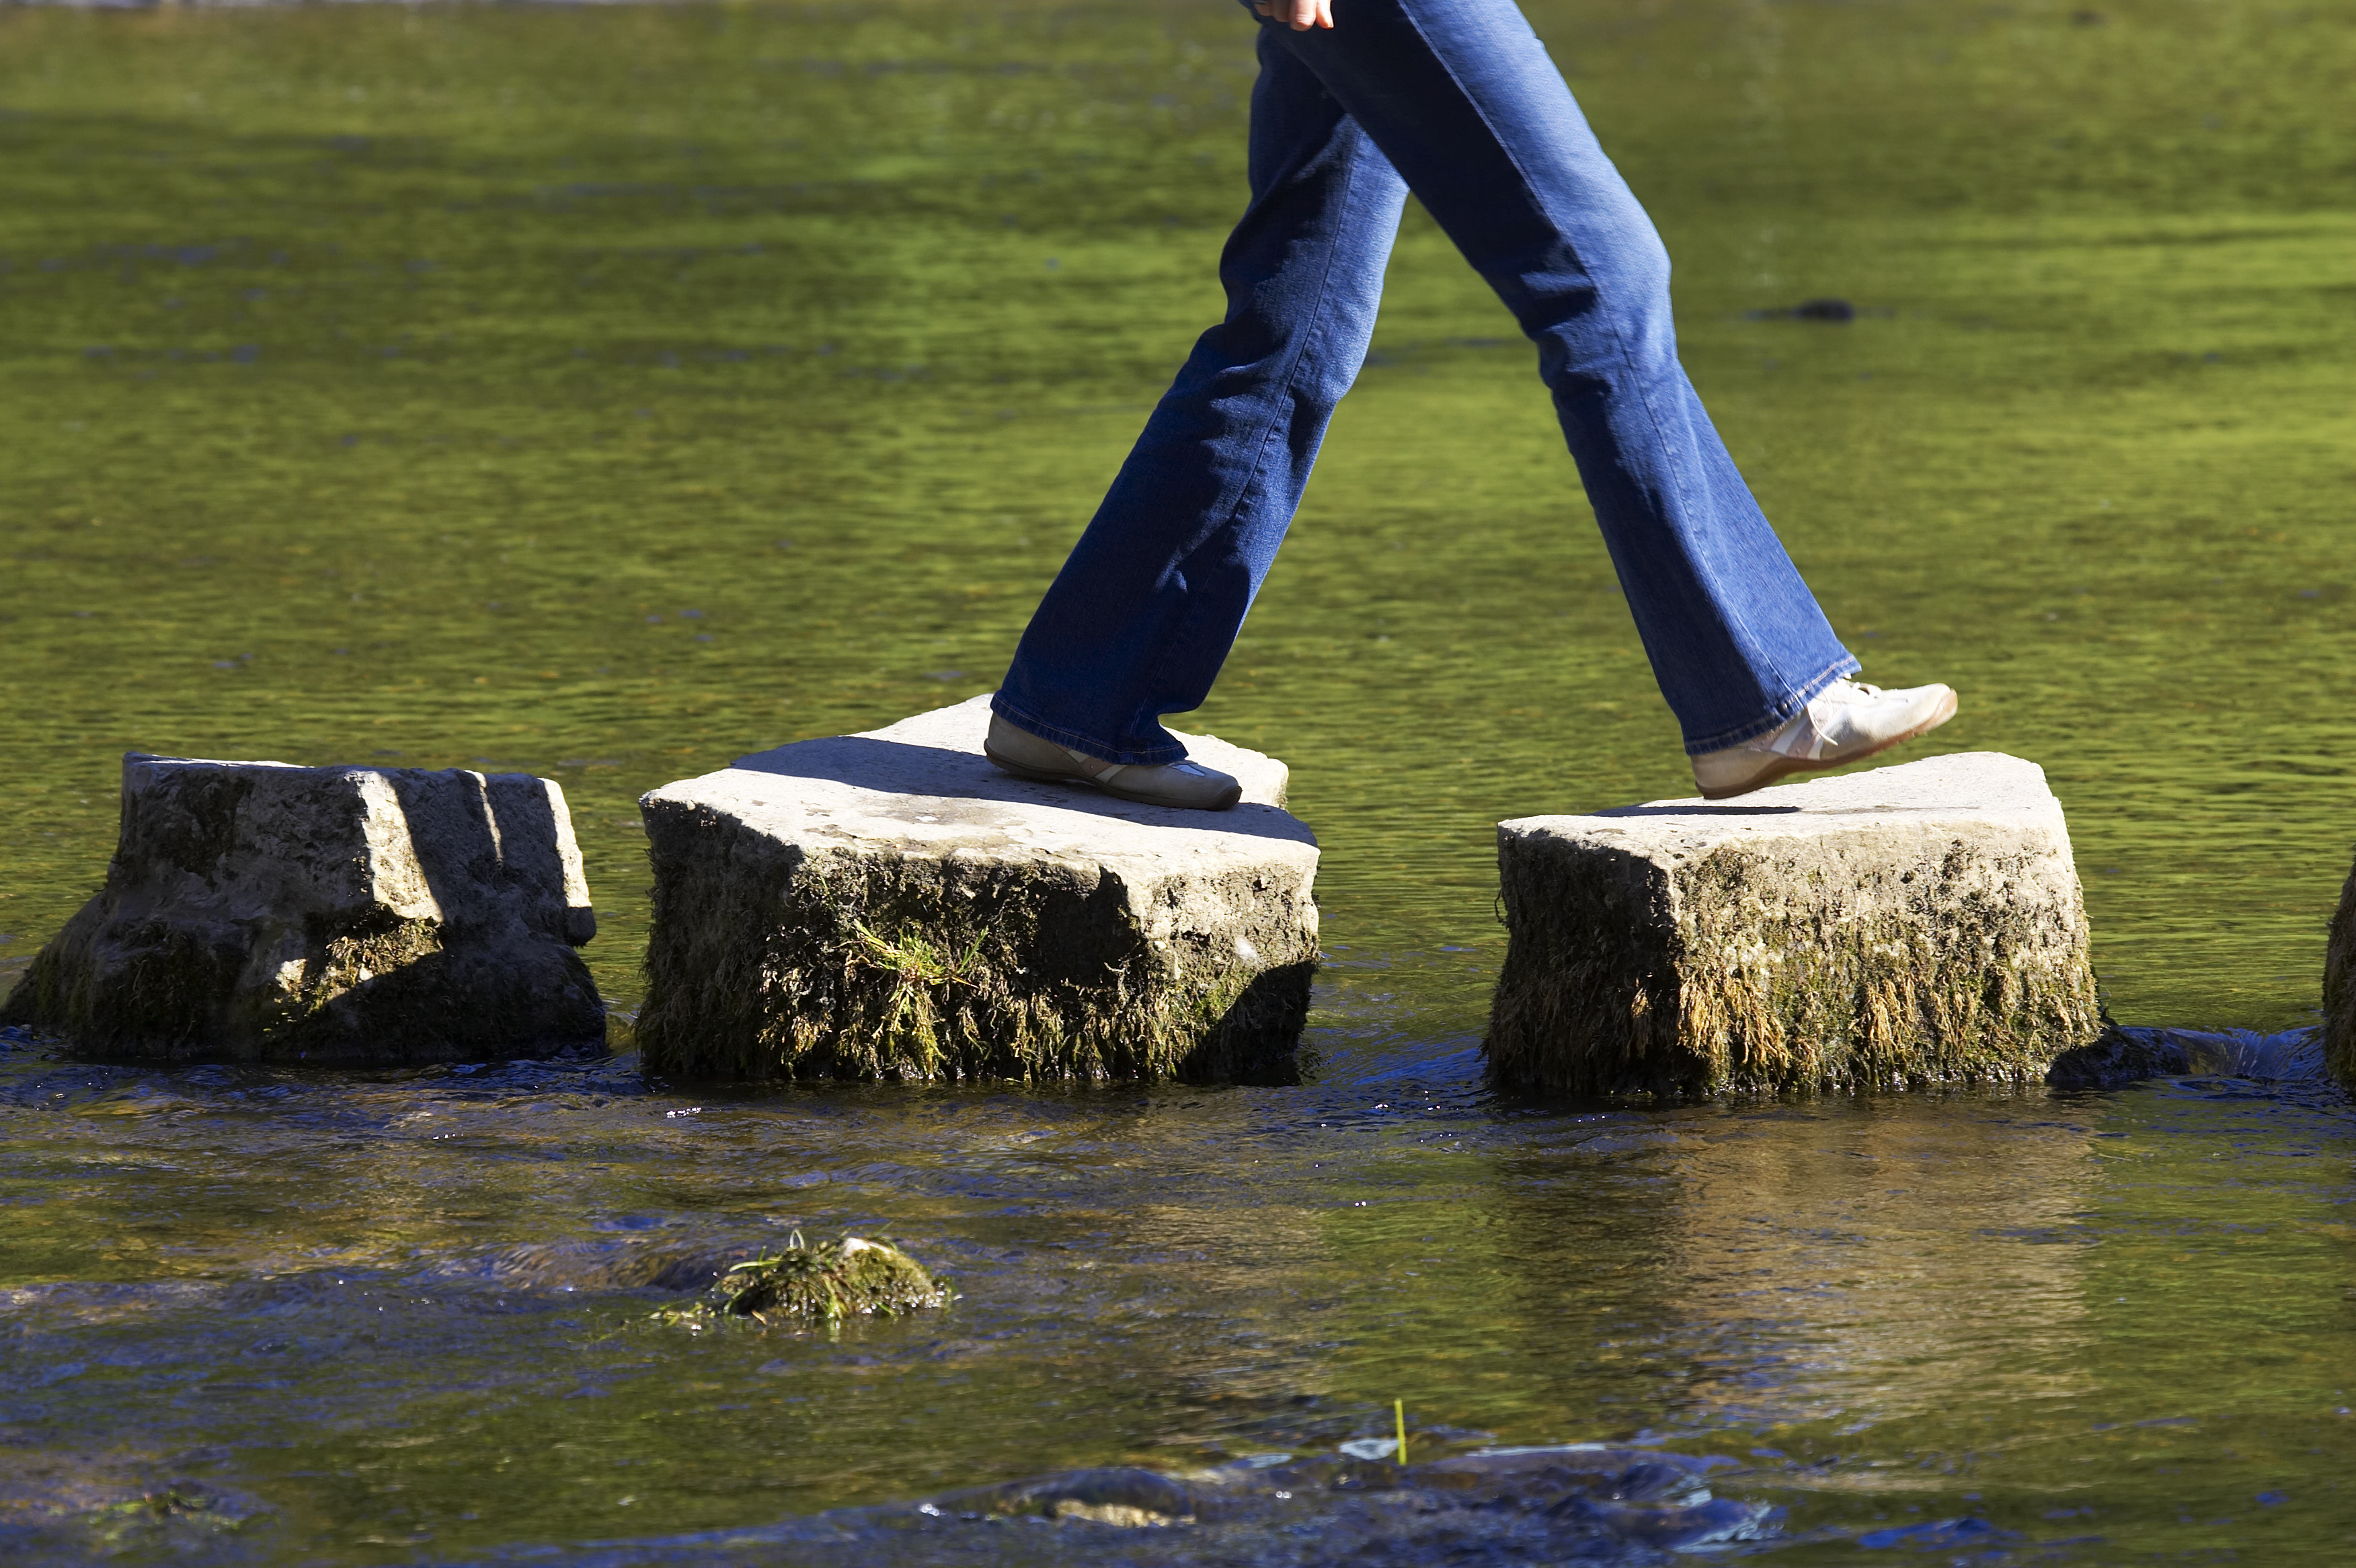 crossing_three_stepping_stones_in_a_river___jeff_gynane__48384